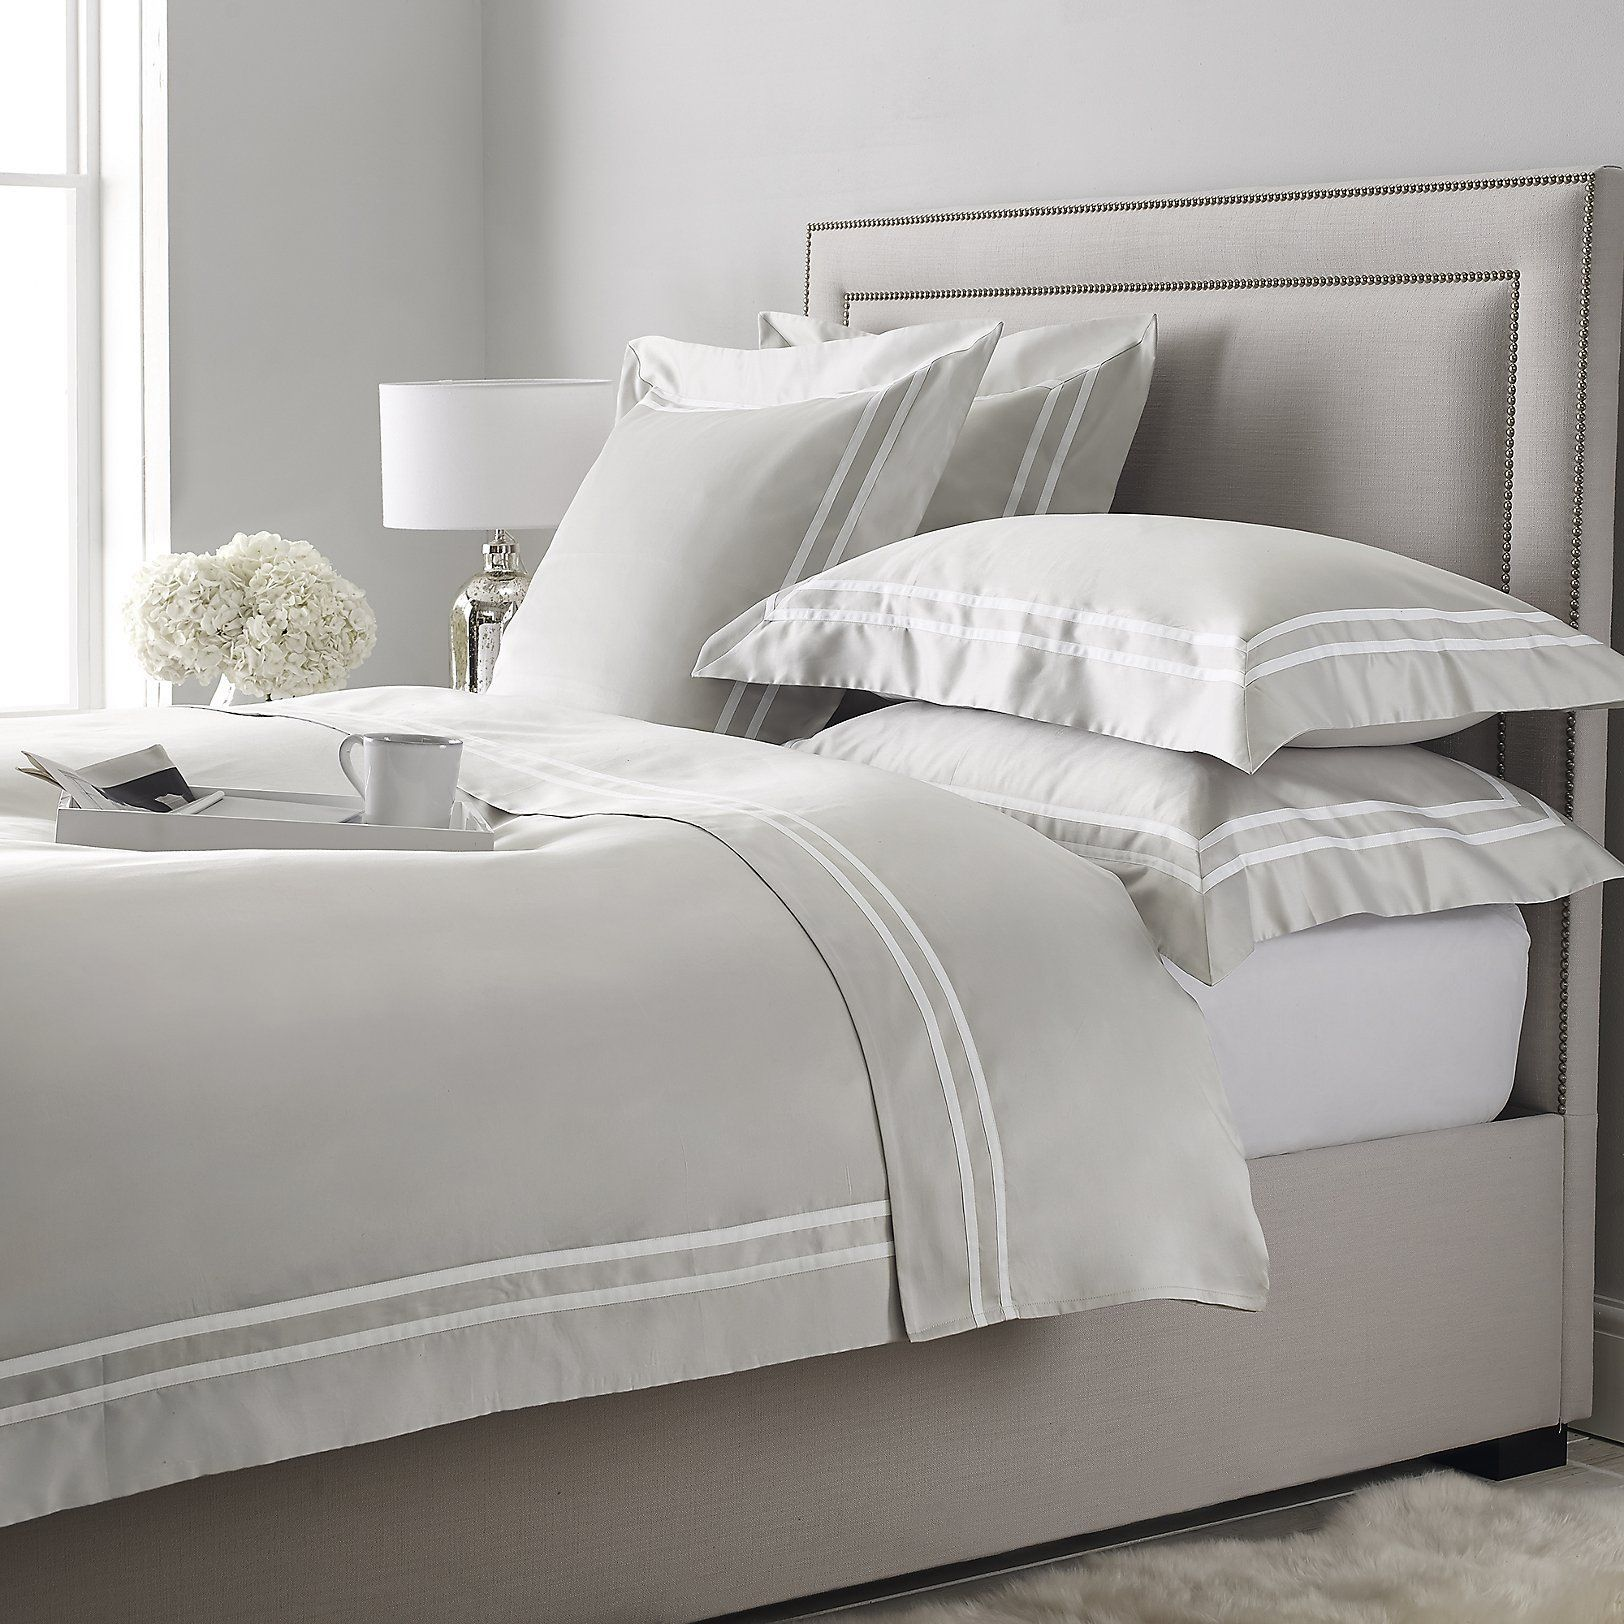 Bedroom from The White Company whitebedroomwardrobessale